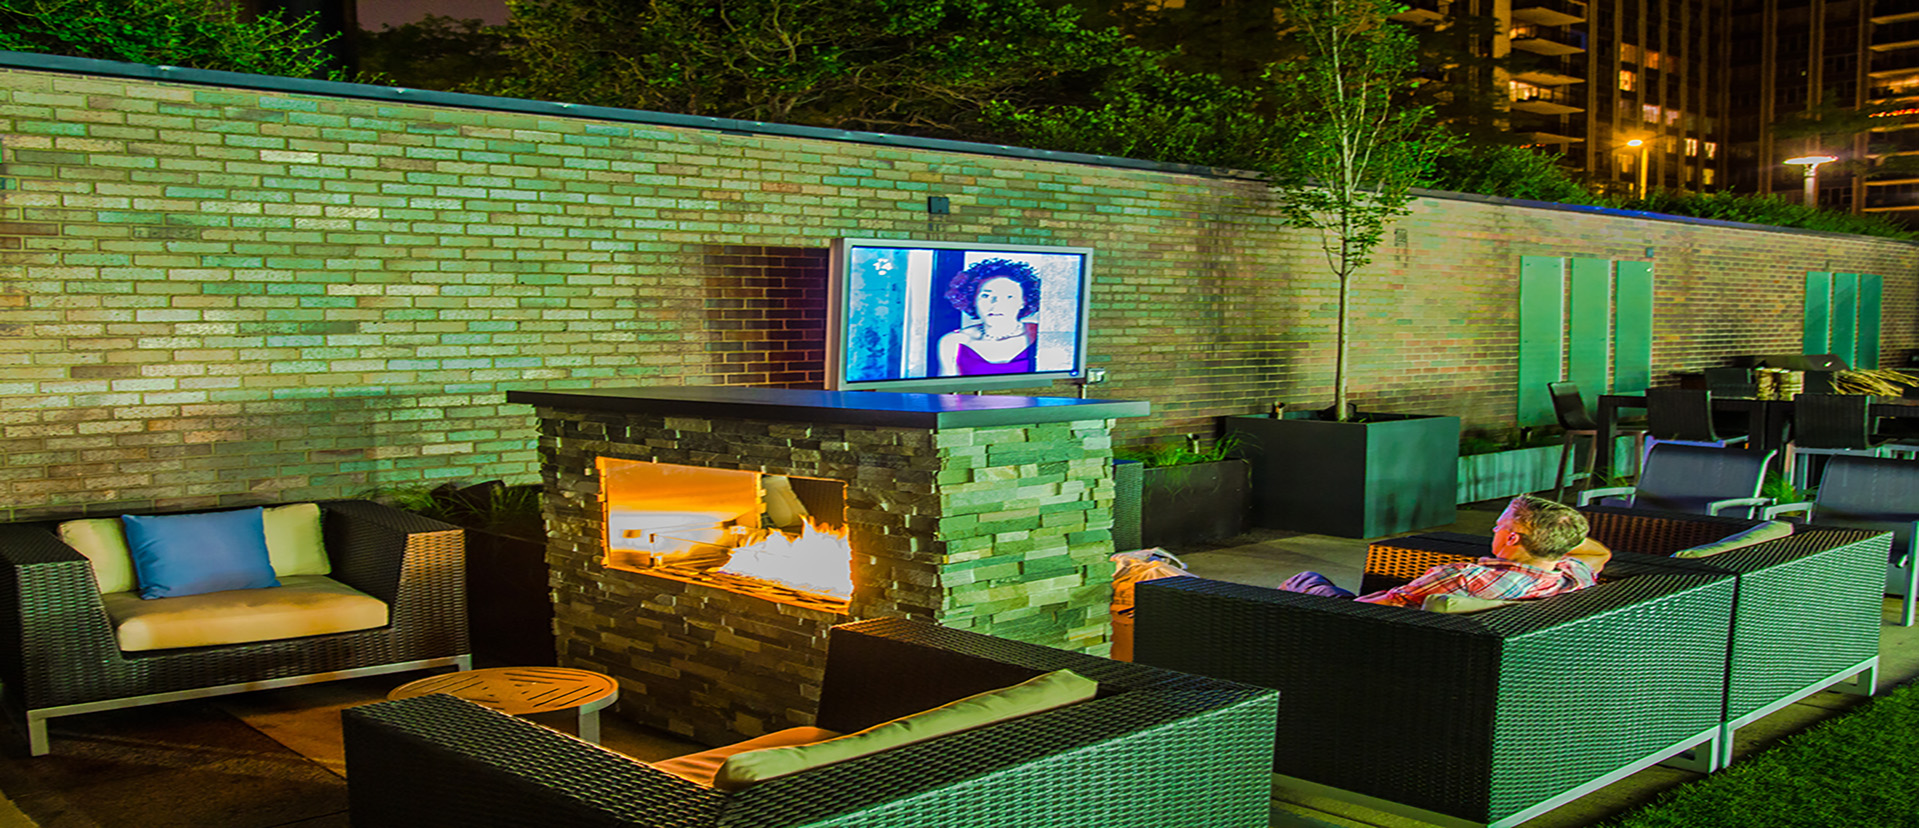 fire_pits_fireplace_inserts_roof_top_fire_pits_fireboulders_natural_stone_veneer